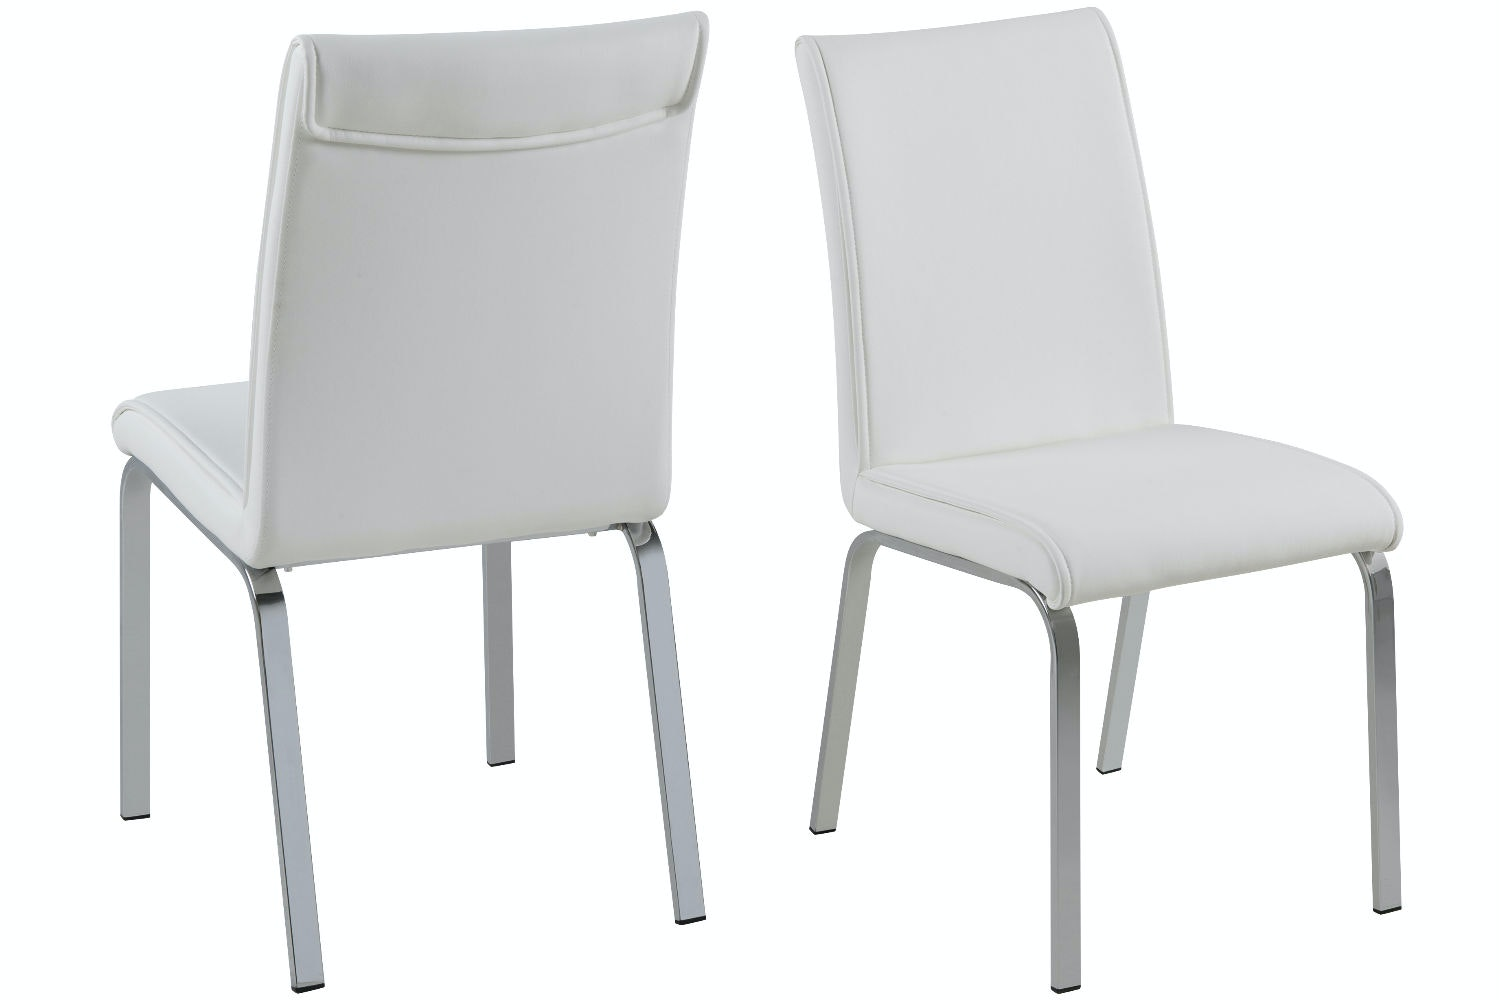 Lennox 5 Piece Dining Set | Leonora Dining Chairs White